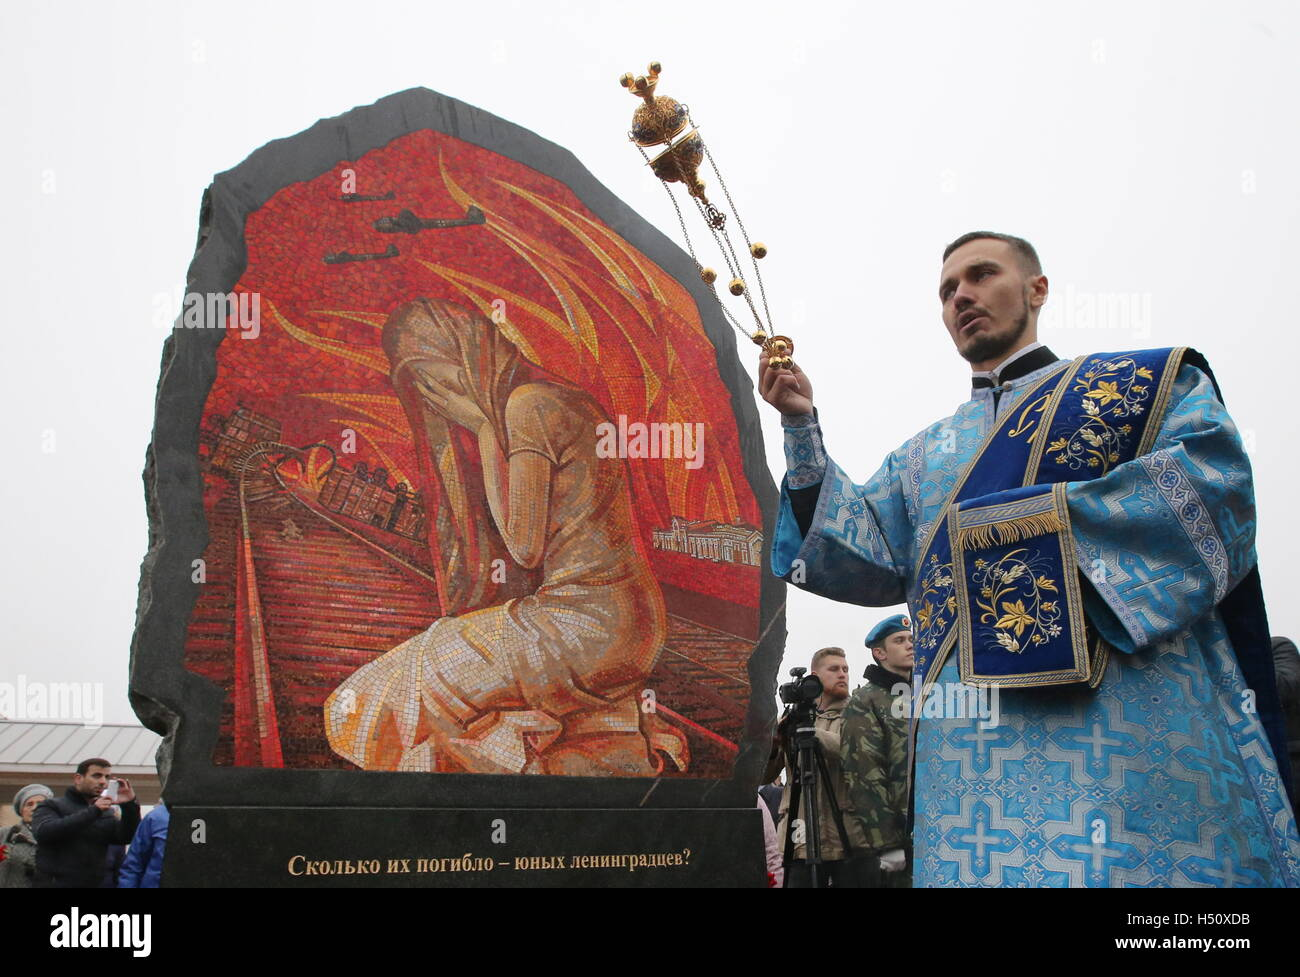 Tikhvin, Leningrad Region, Russia. 14th Oct, 2016. A Russian Orthodox priest conducts a blessing ceremony at a war - Stock Image